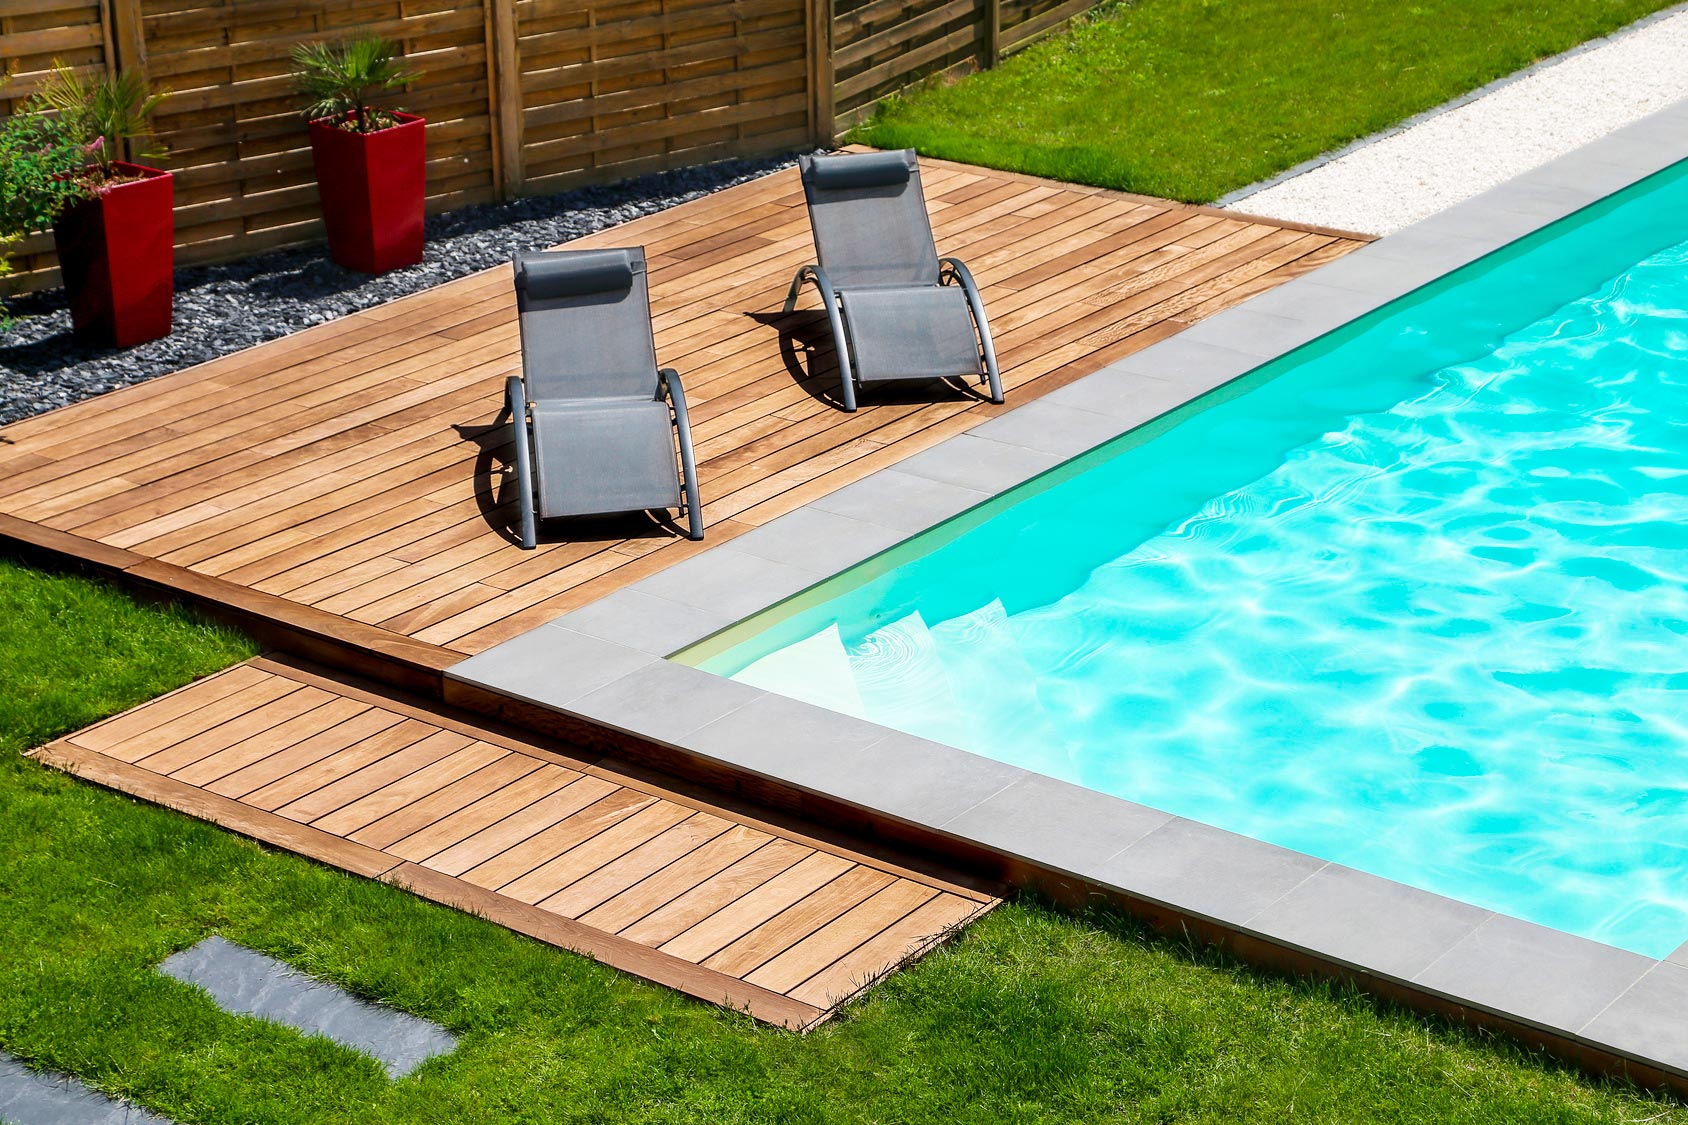 Piscine enterr e contemporaine sur mesure piscines design for Refoulement piscine miroir